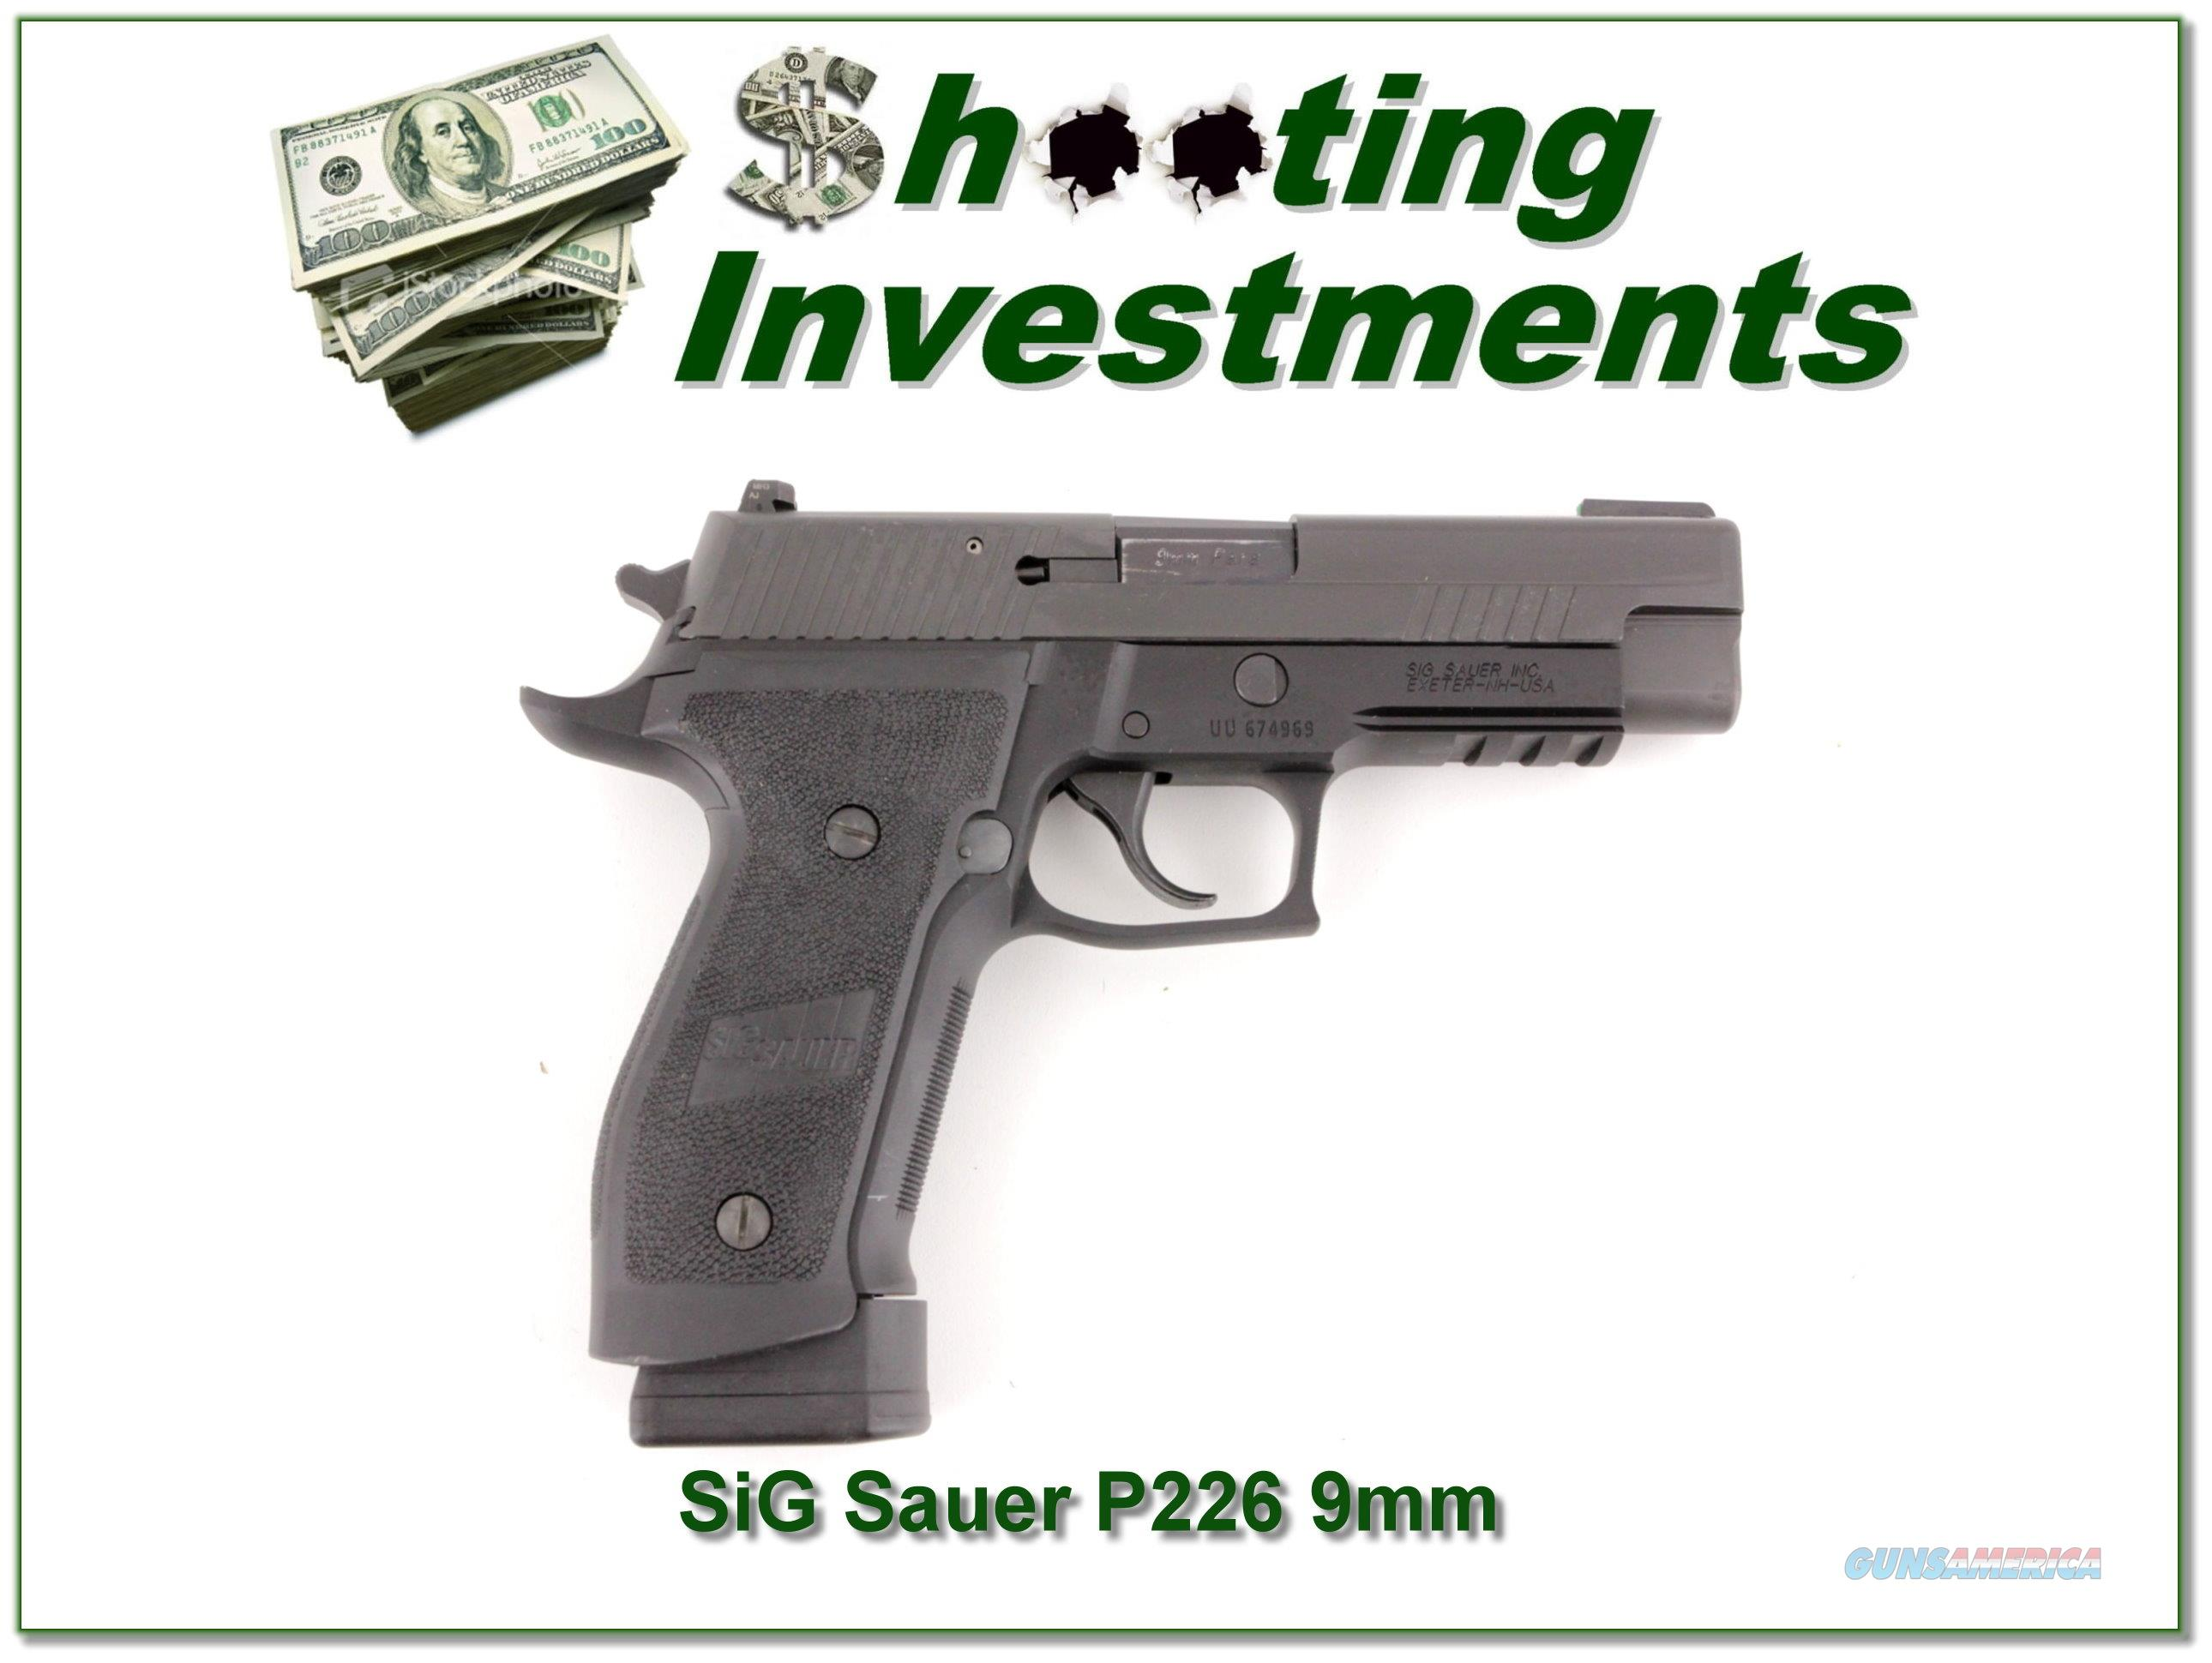 Sig Sauer P226 Tacops 9mm Exc Cond  Guns > Pistols > Sig - Sauer/Sigarms Pistols > P226